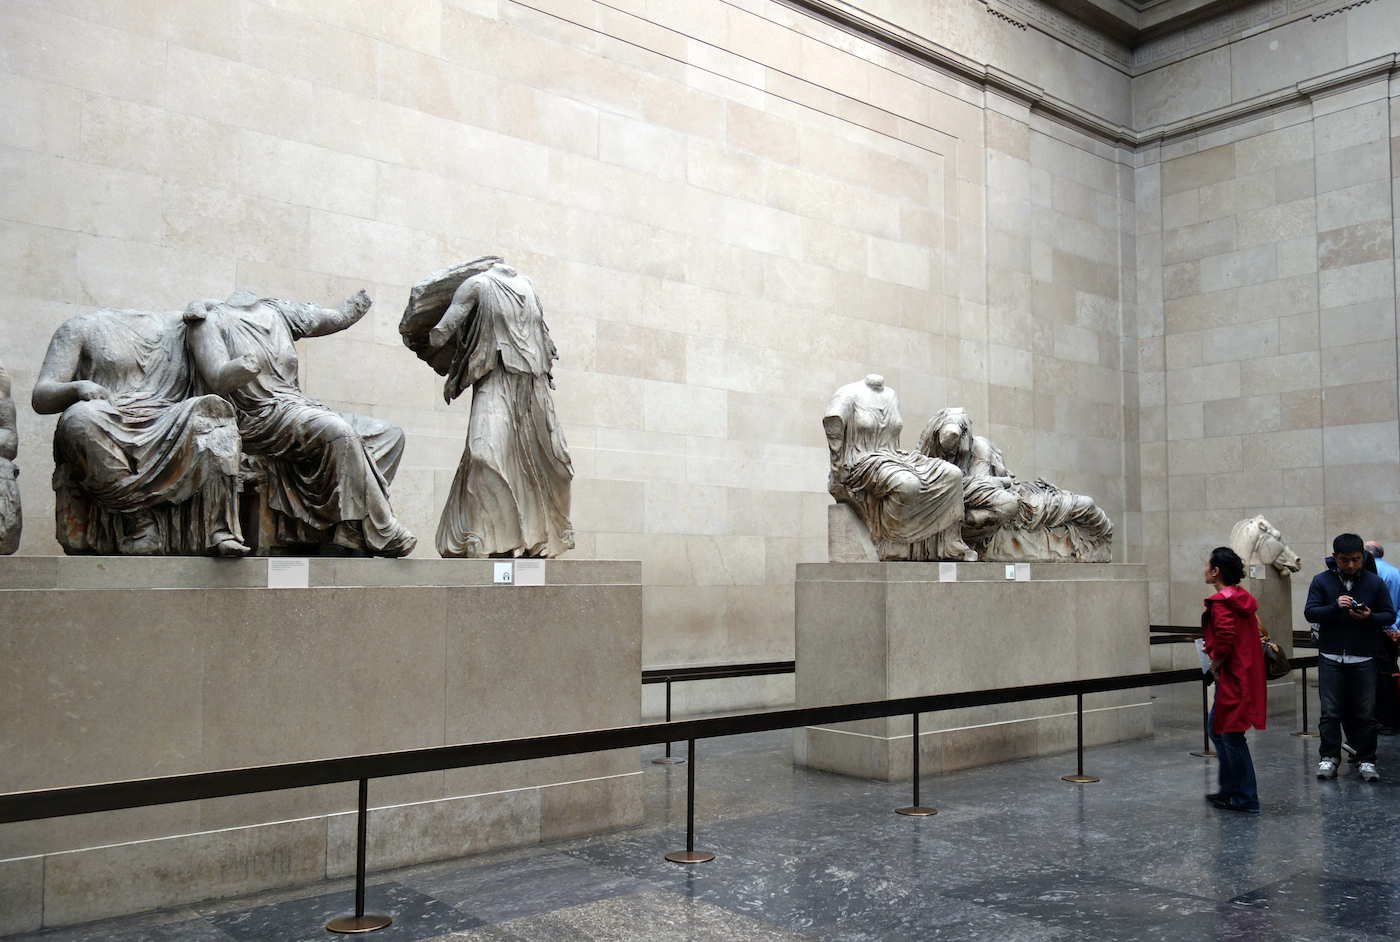 The Parthenon Marbles at the British Museum (all photos by the author for Hyperallergic)